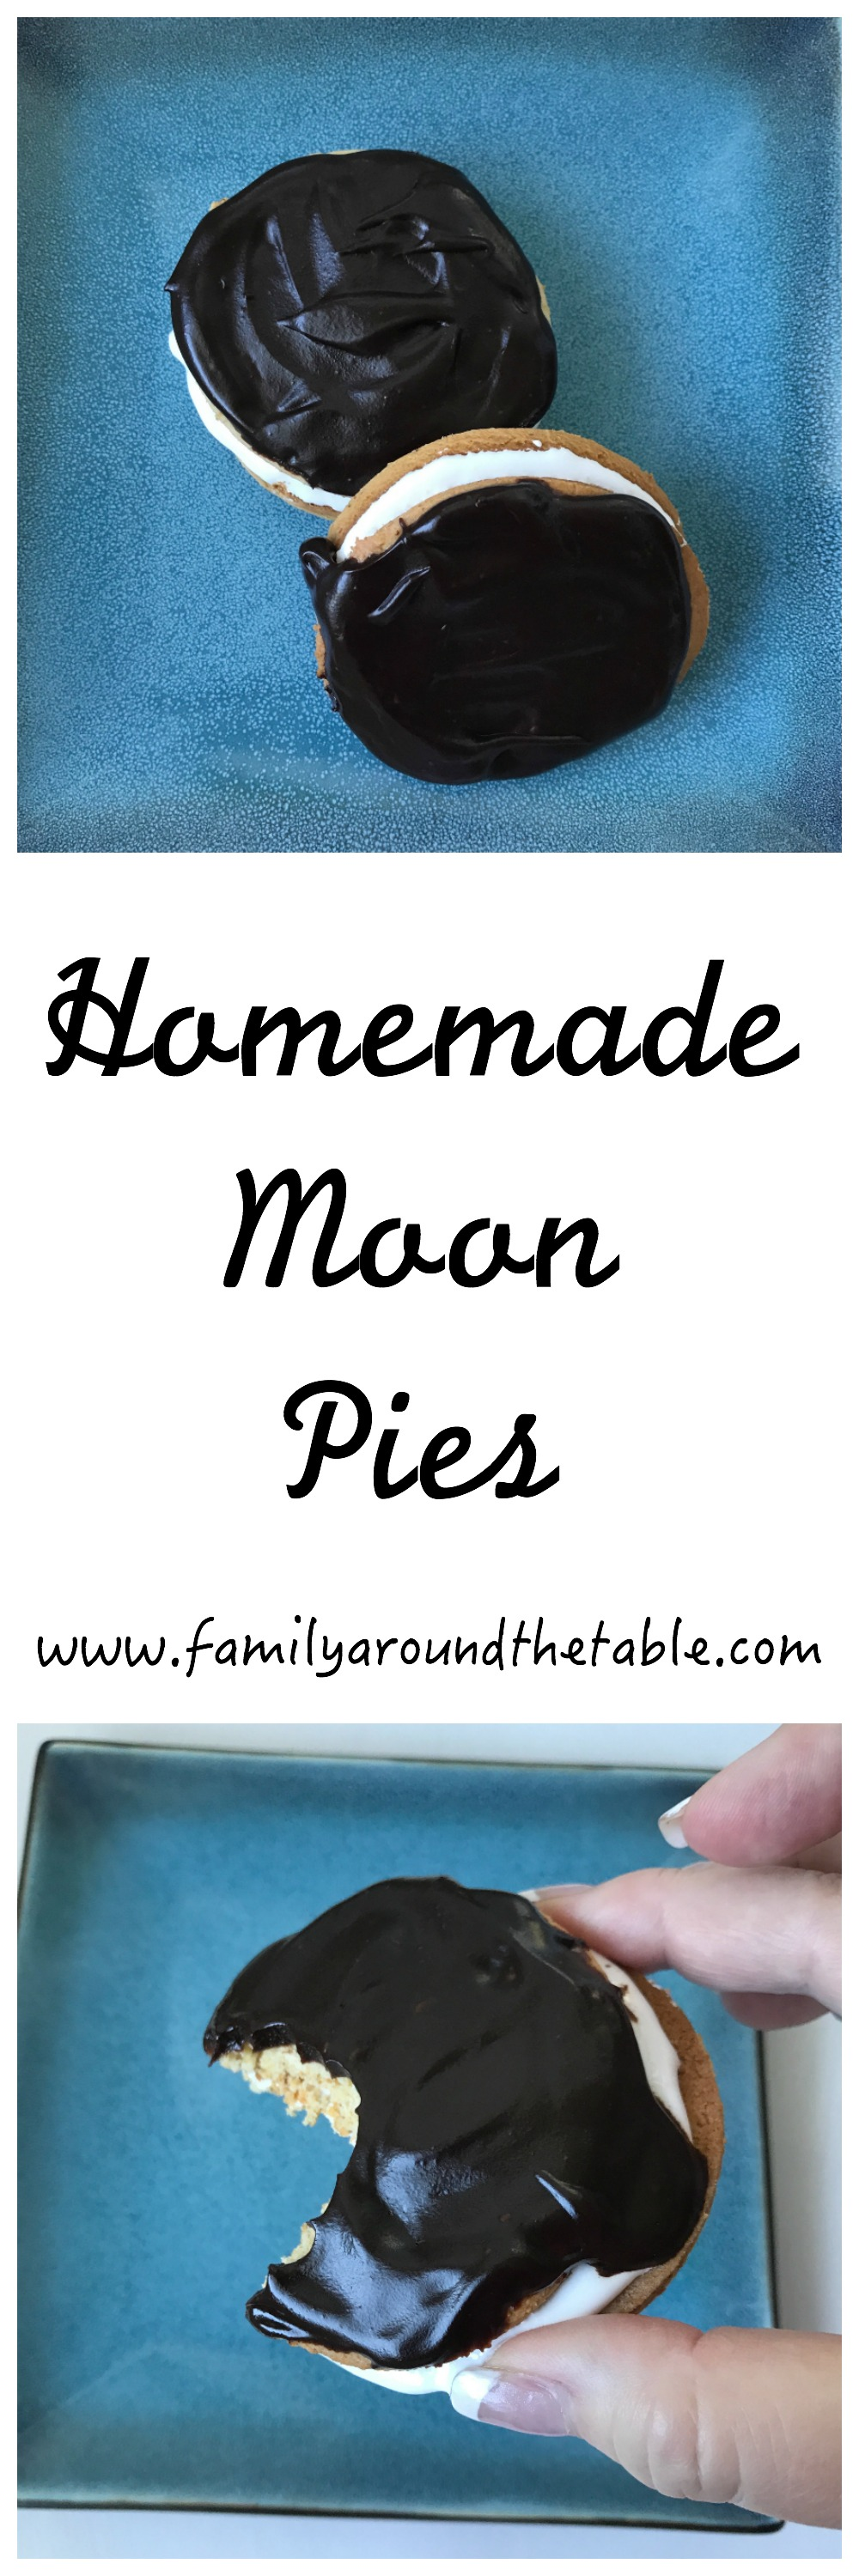 Pi day Archives • Family Around the Table